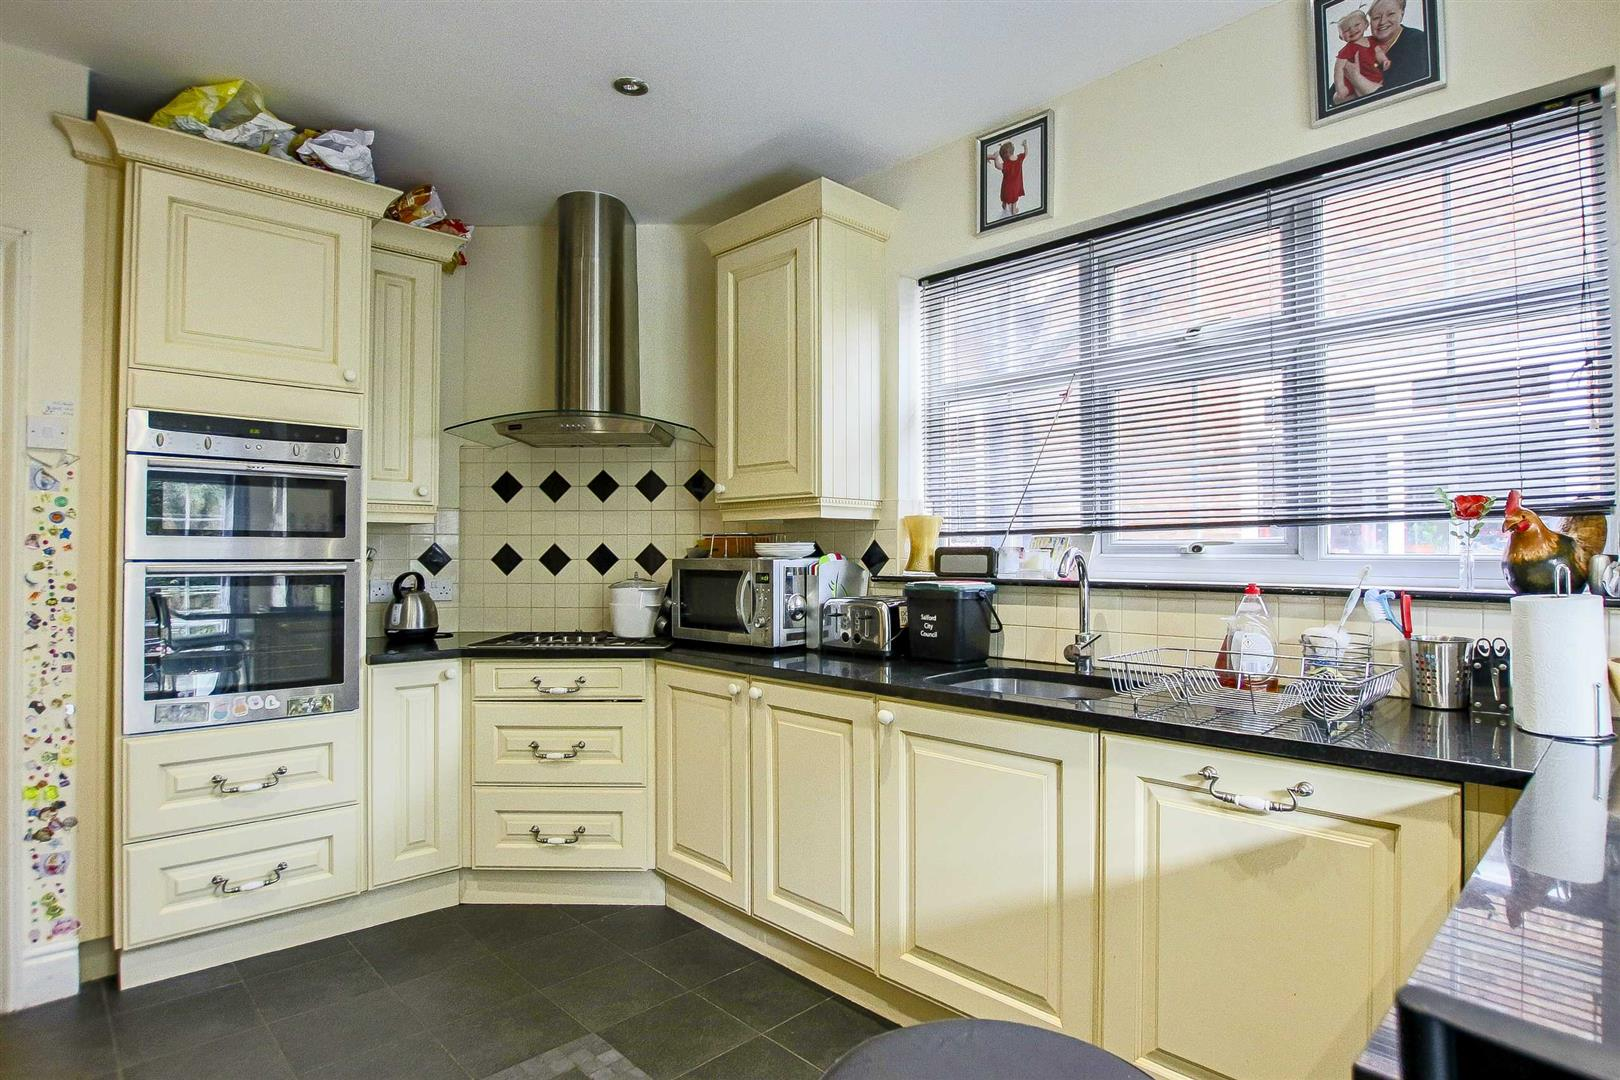 5 Bedroom Terraced House For Sale - Image 11